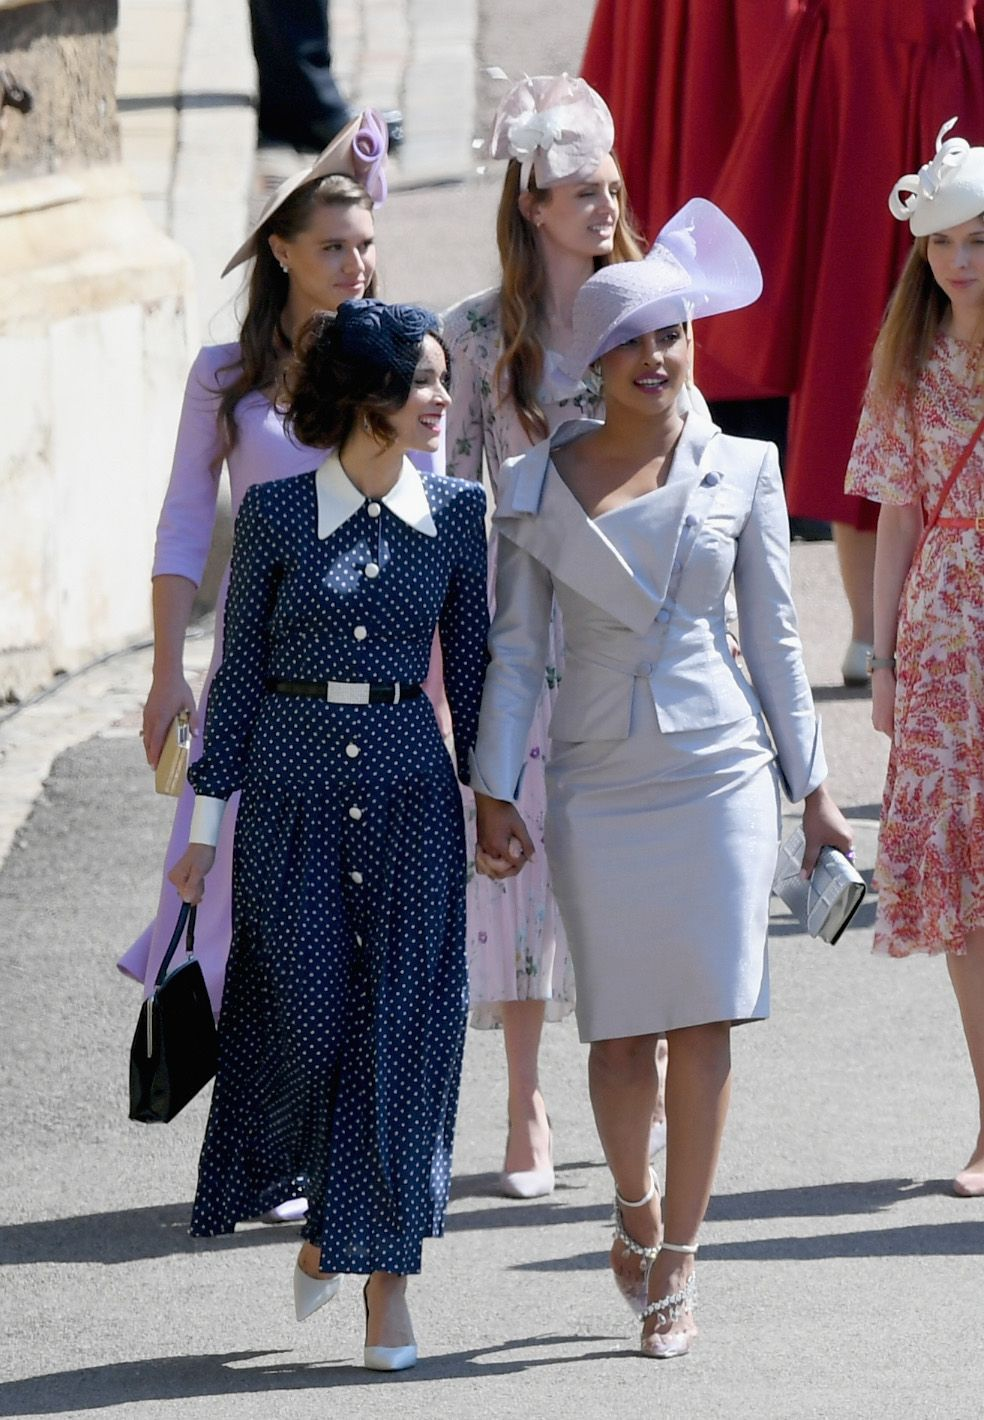 Watch The five best dressed royal wedding guests - and how to shop their looks video